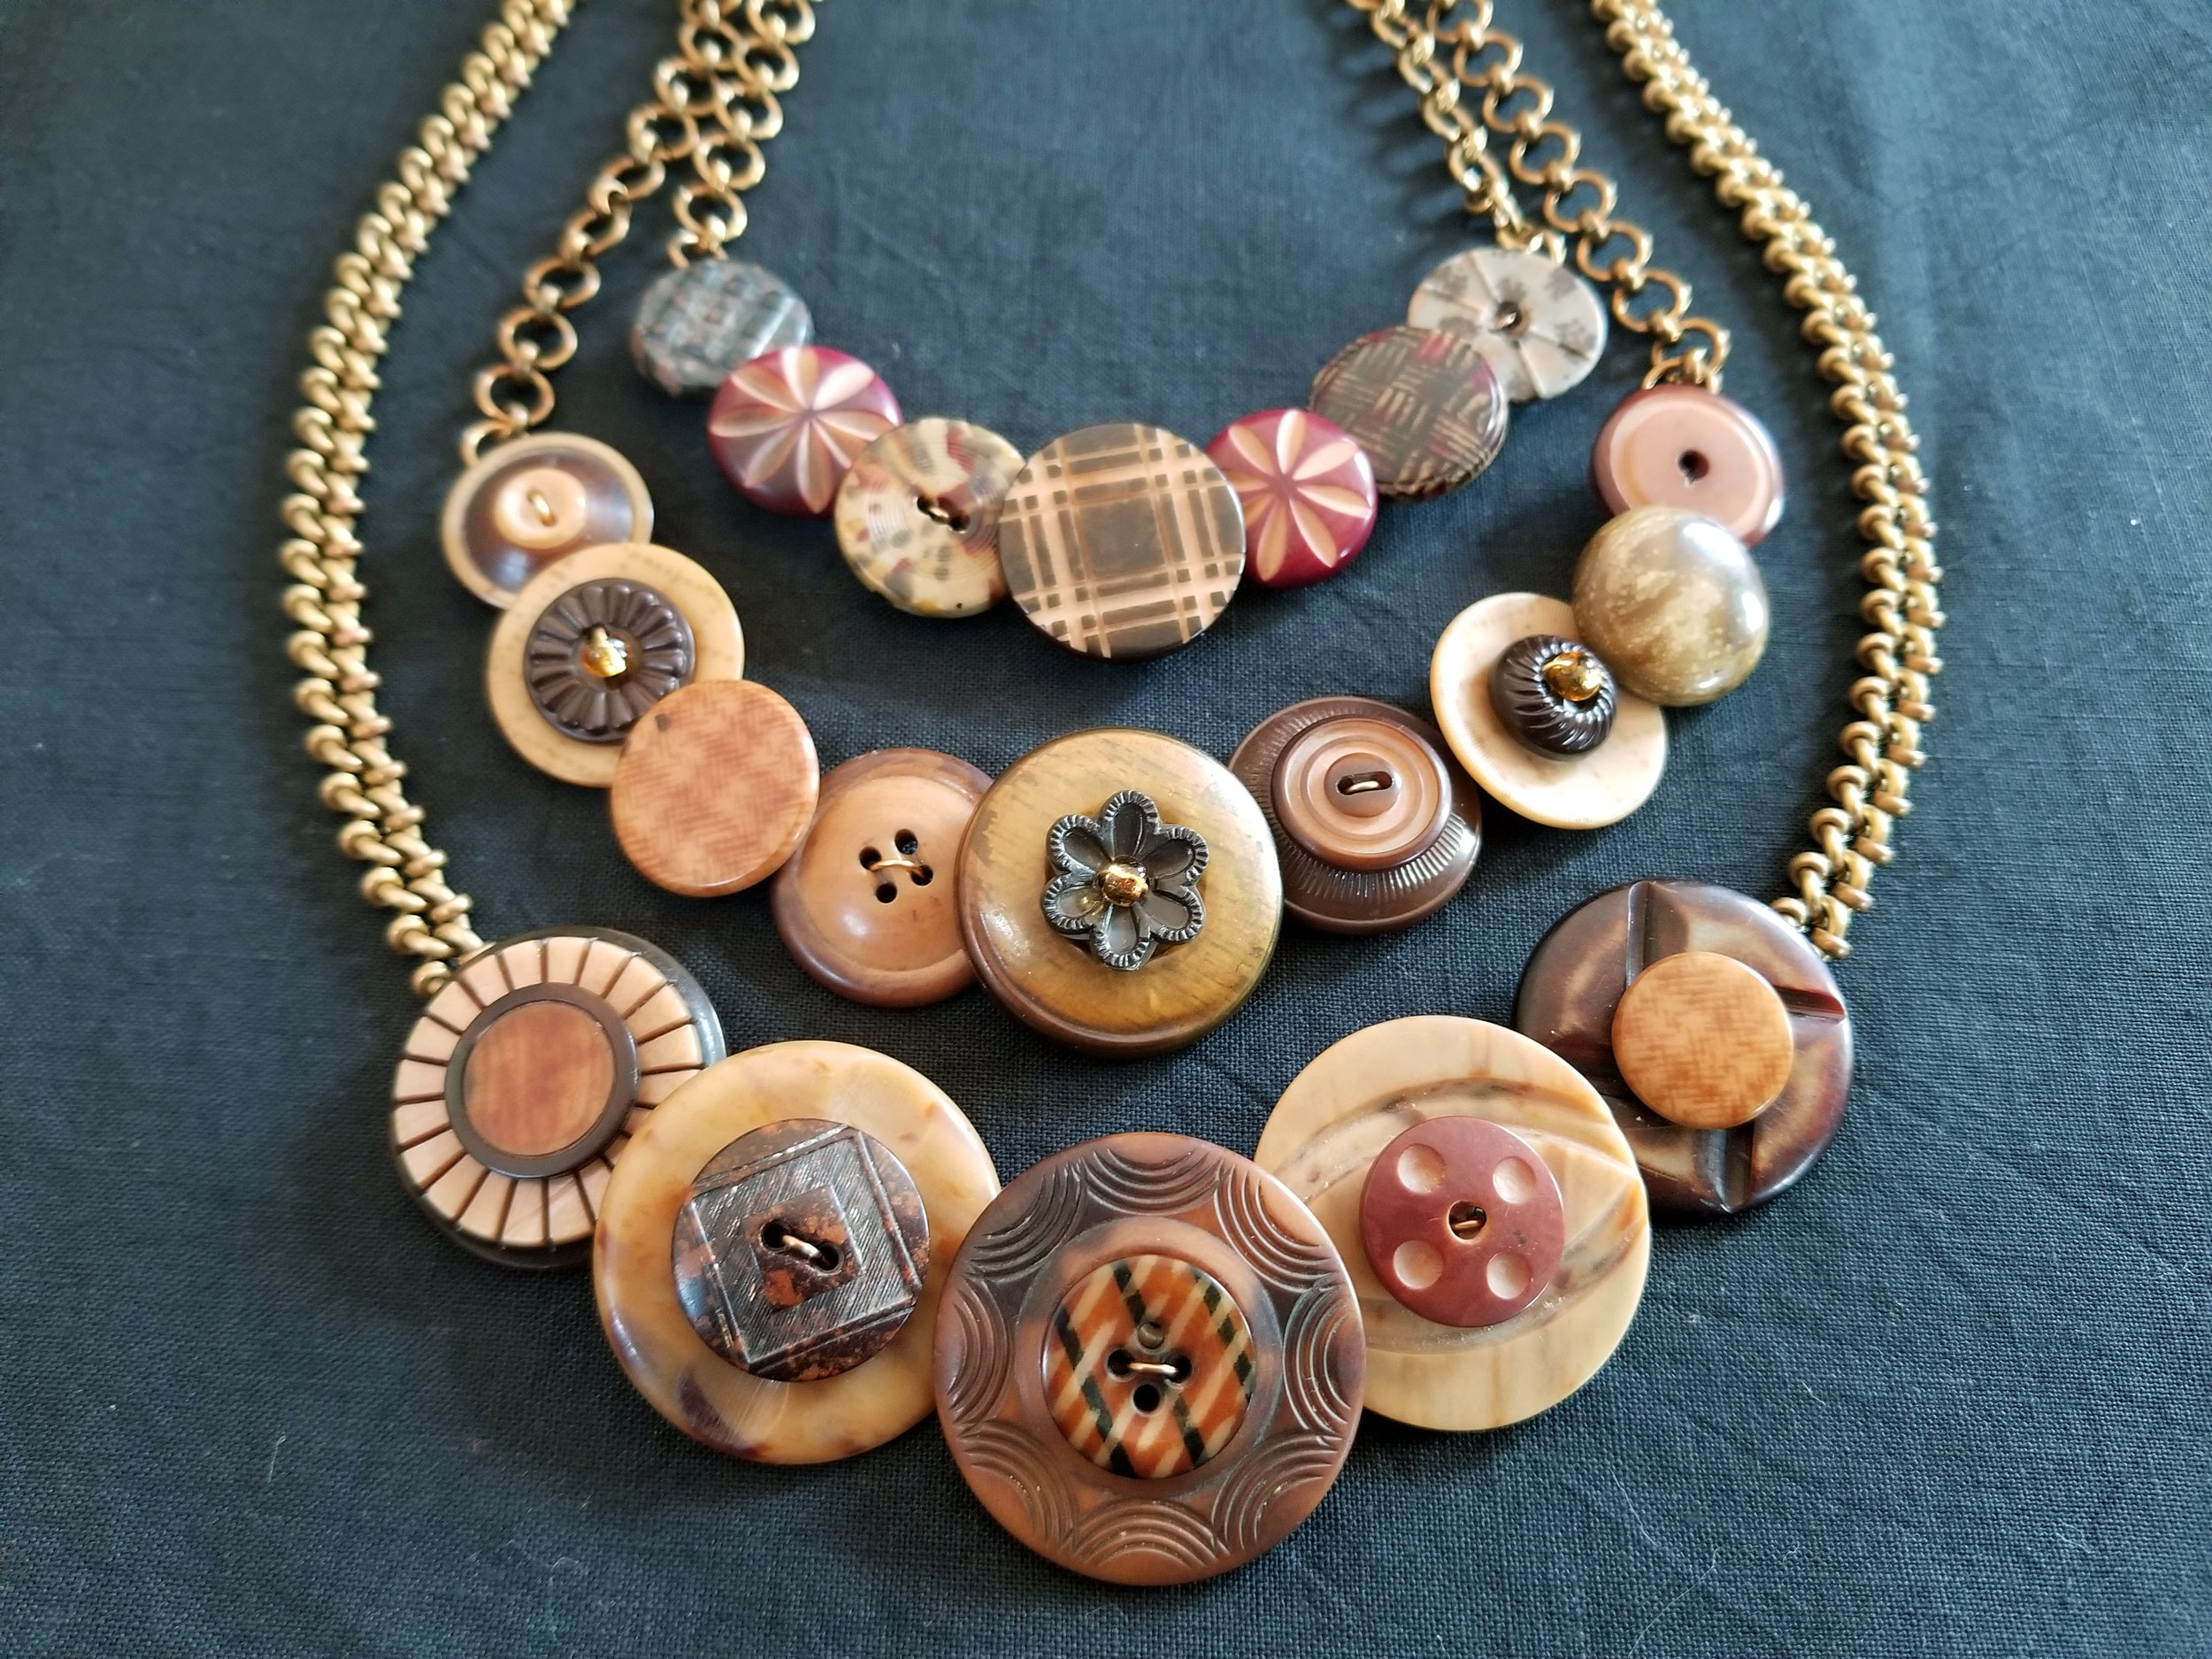 Lucas_vintage_tagua_nut_button_necklaces.jpg